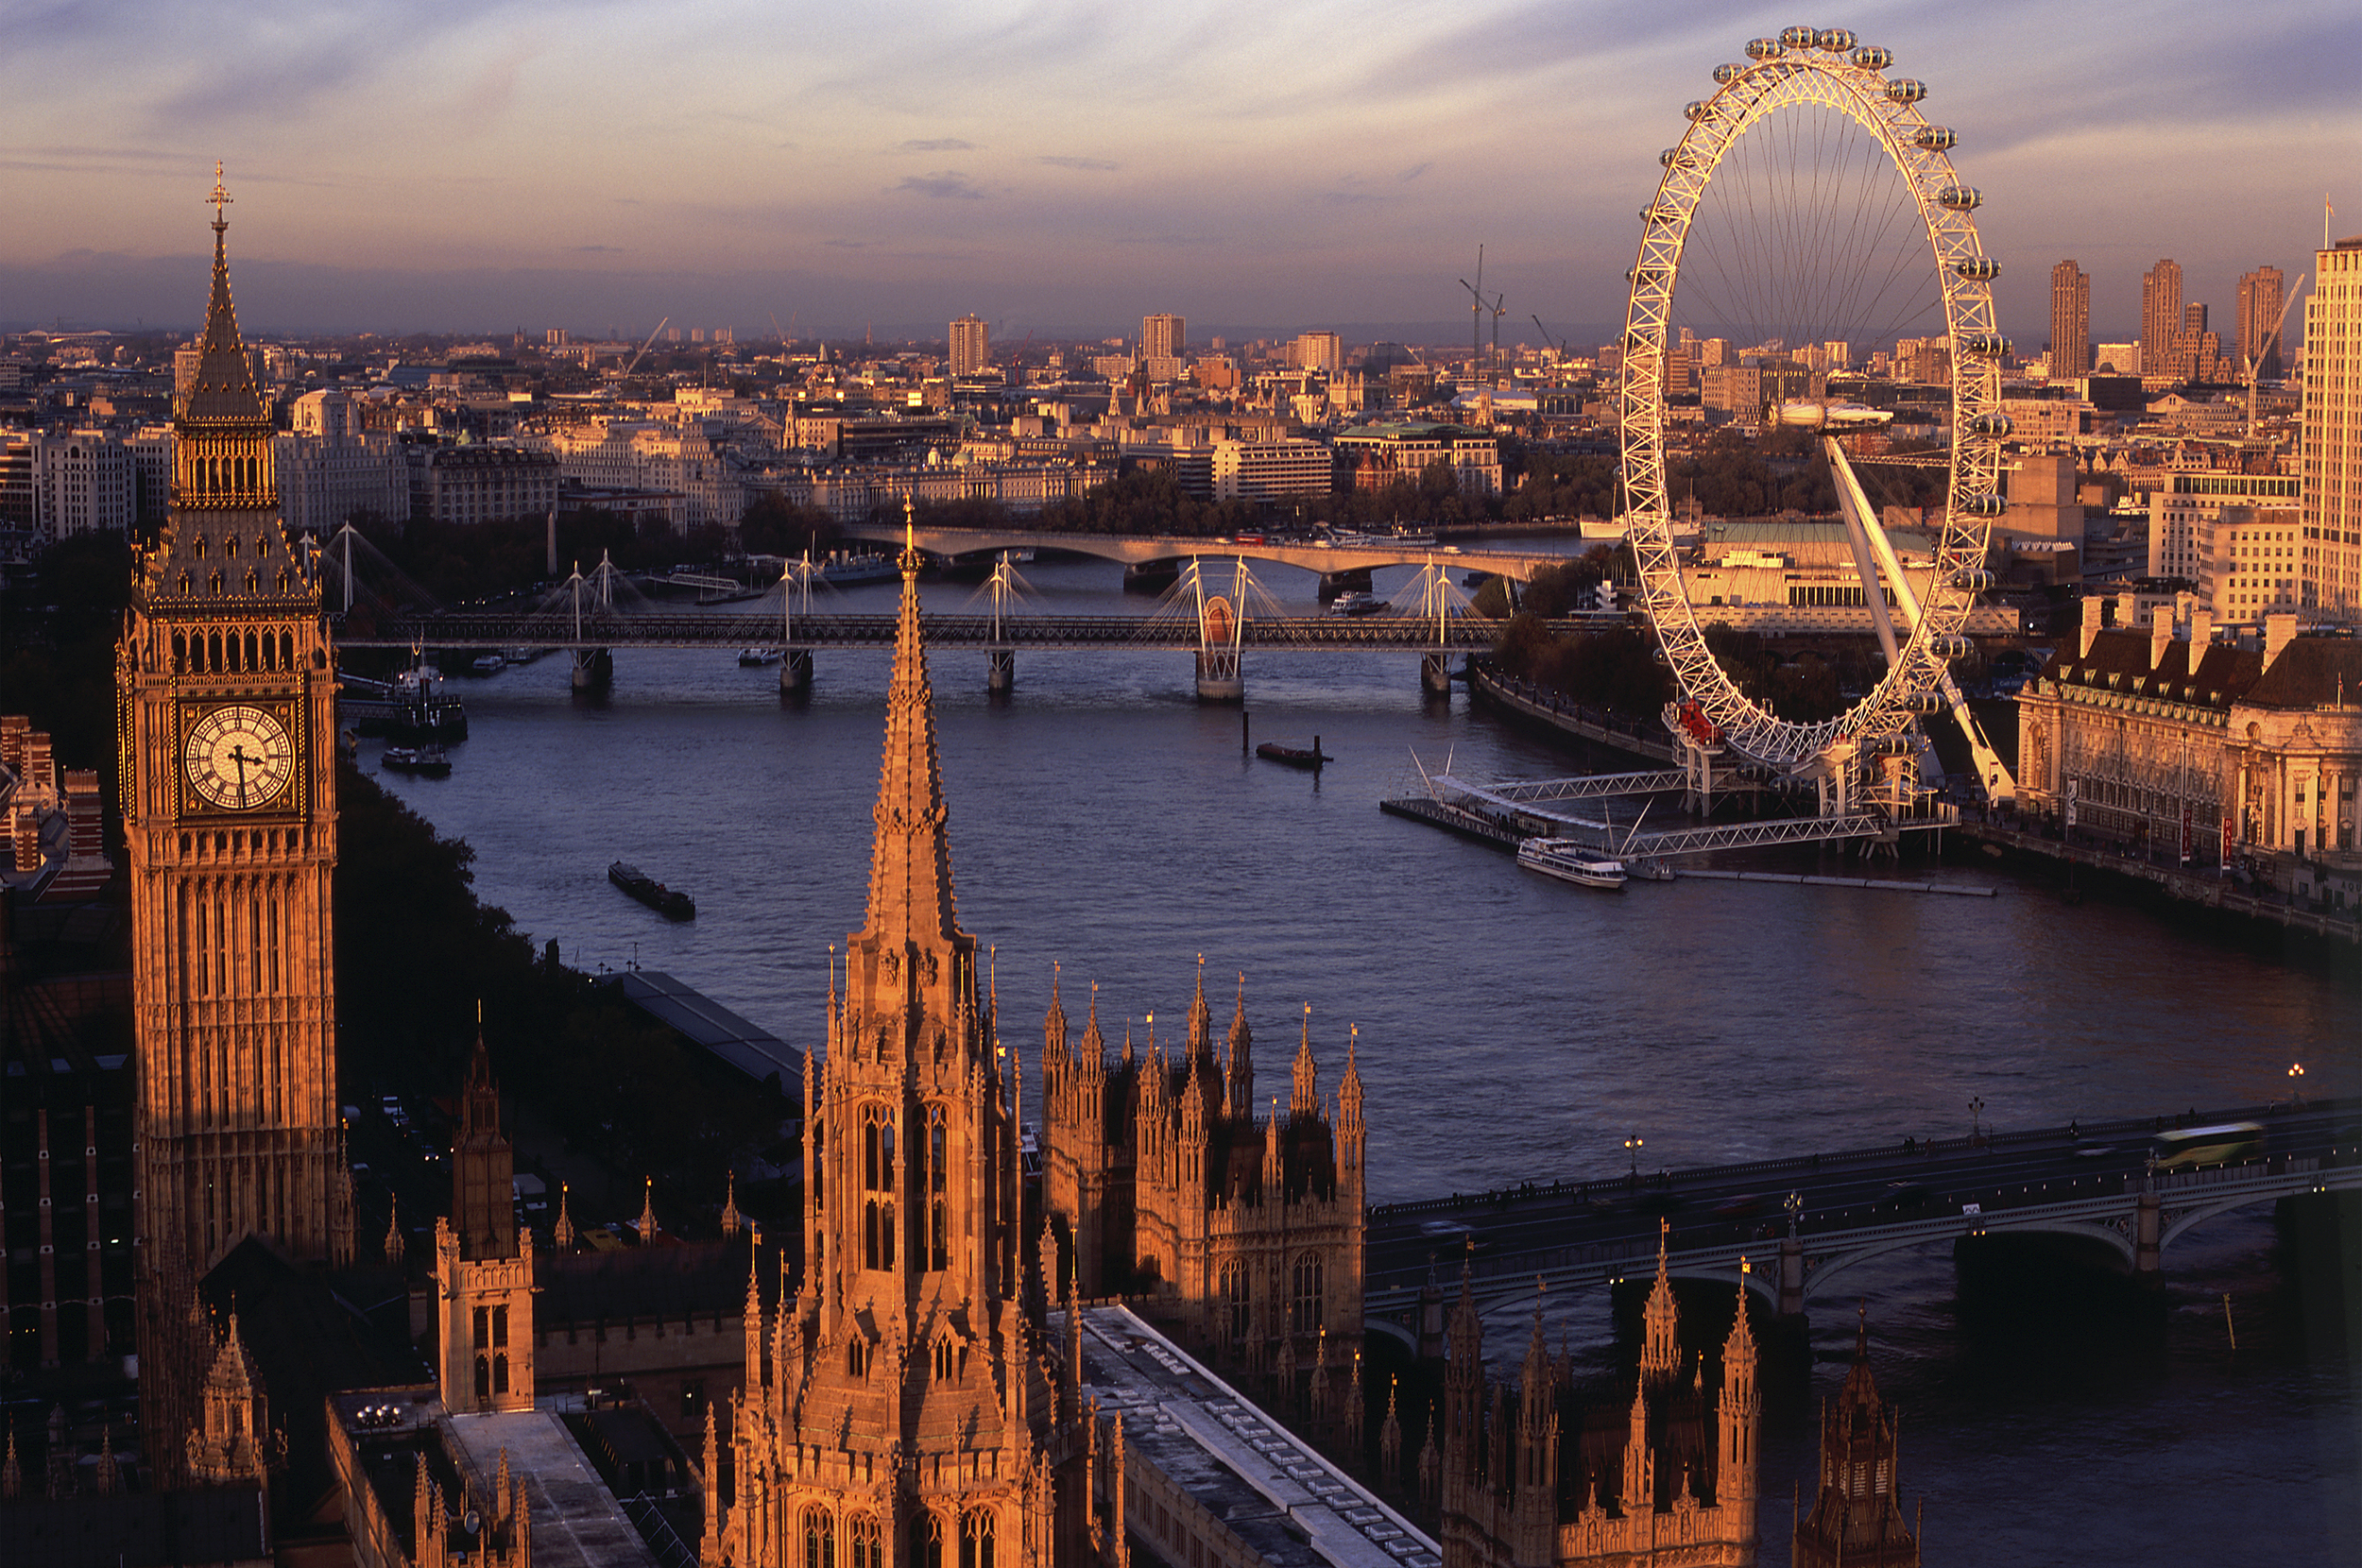 Image provided by VisitBritain